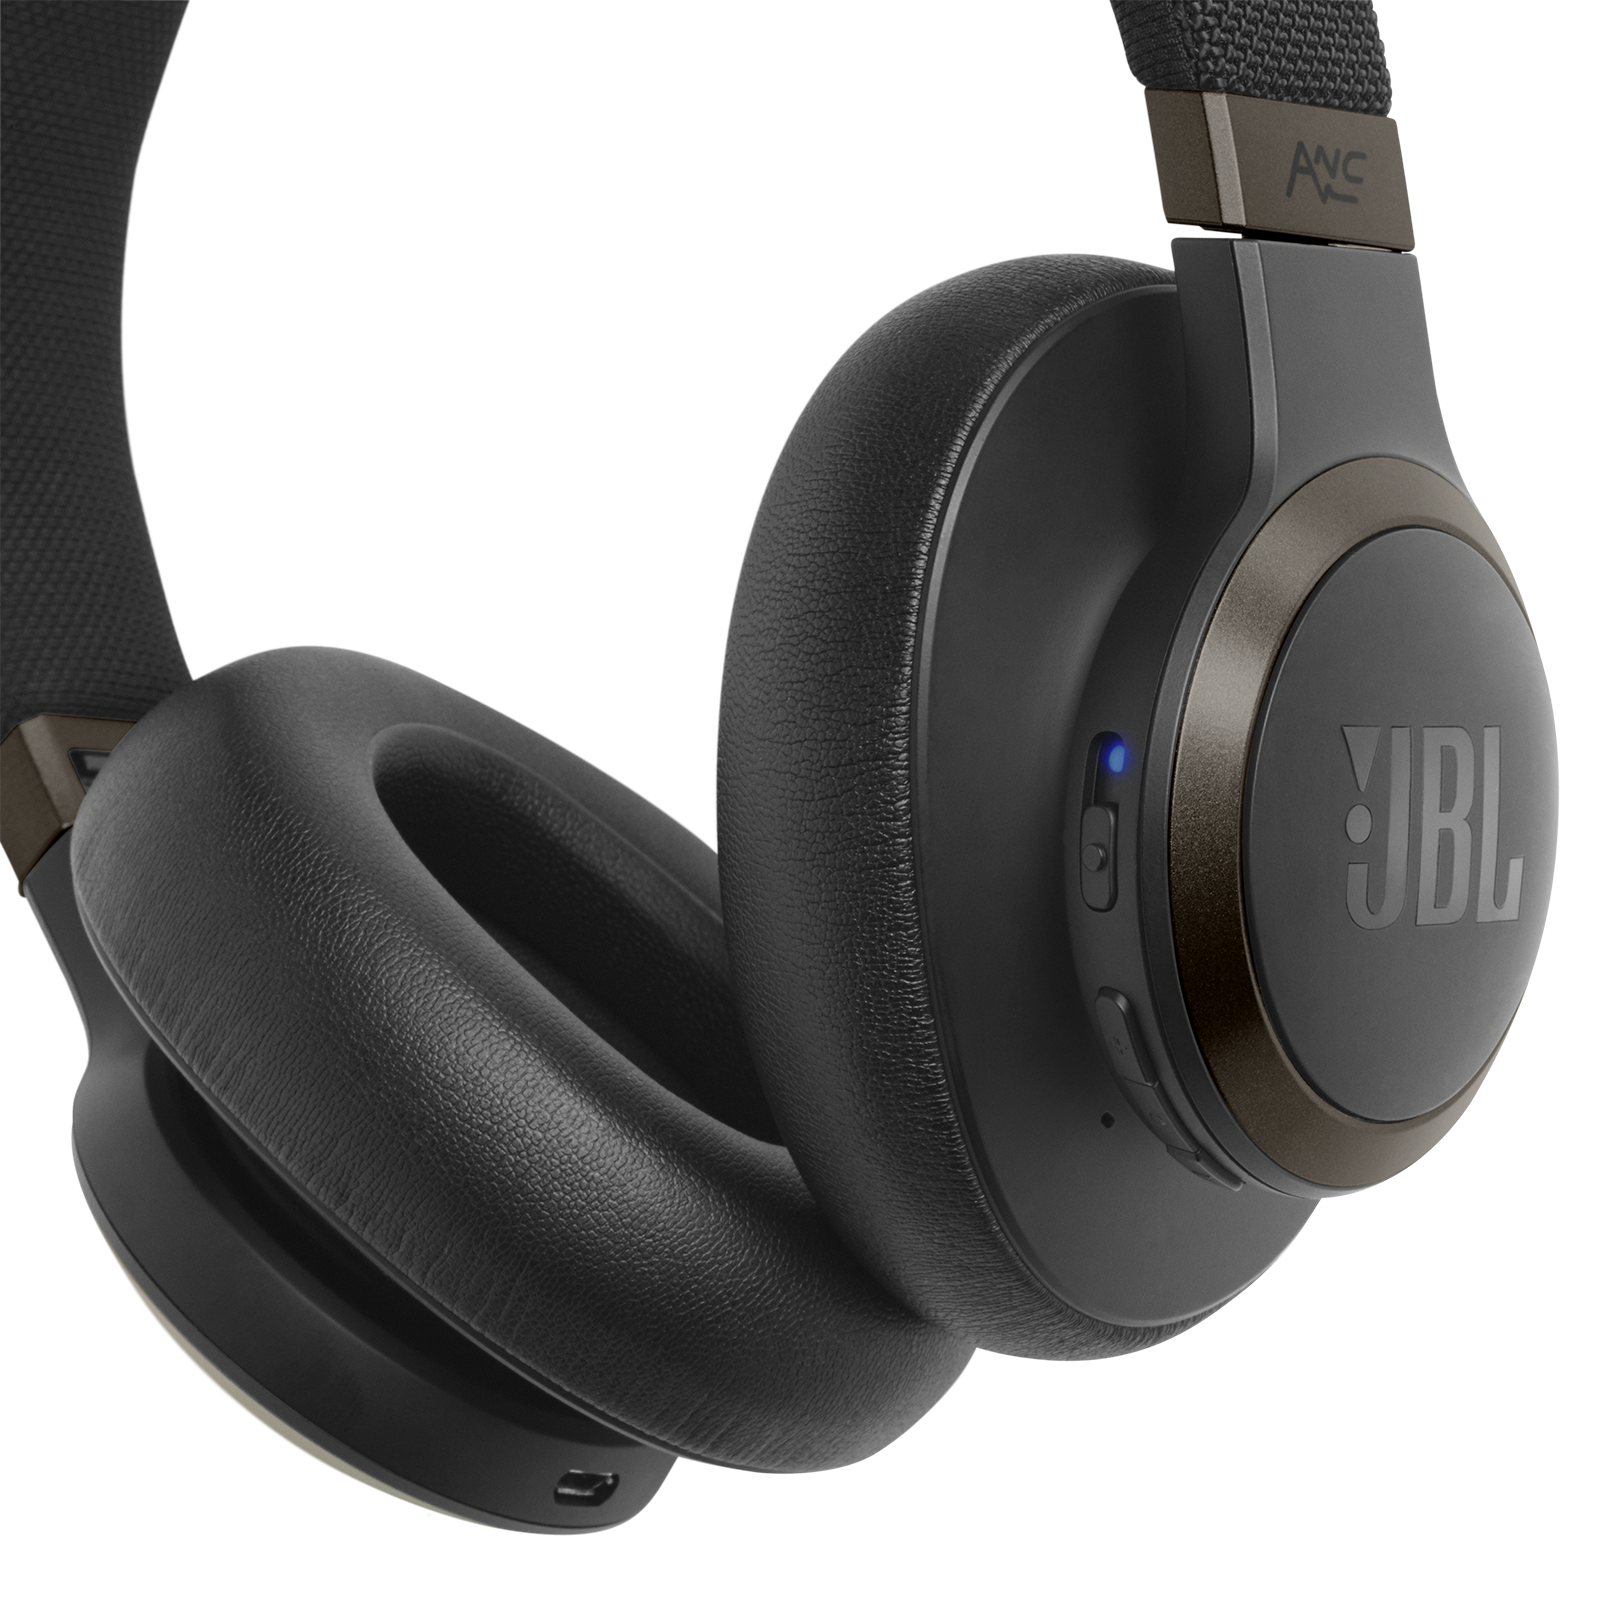 JBL LIVE 650BTNC - Black - Wireless Over-Ear Noise-Cancelling Headphones - Detailshot 4